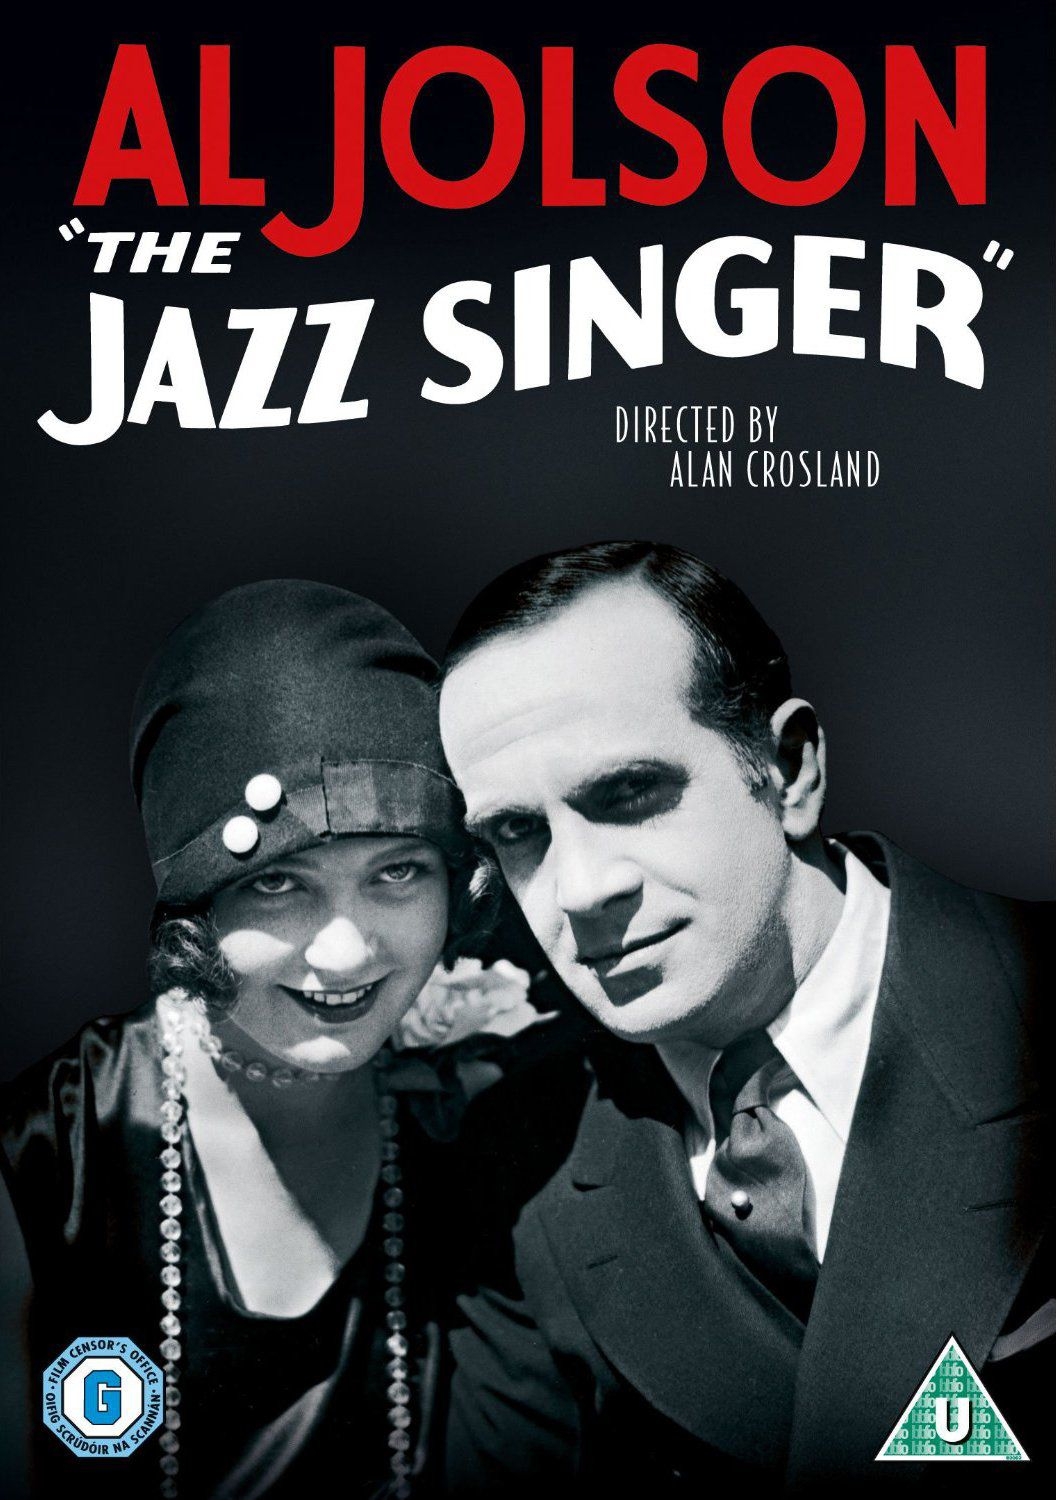 The Jazz Singer 1927 by Alan Crosland - poster